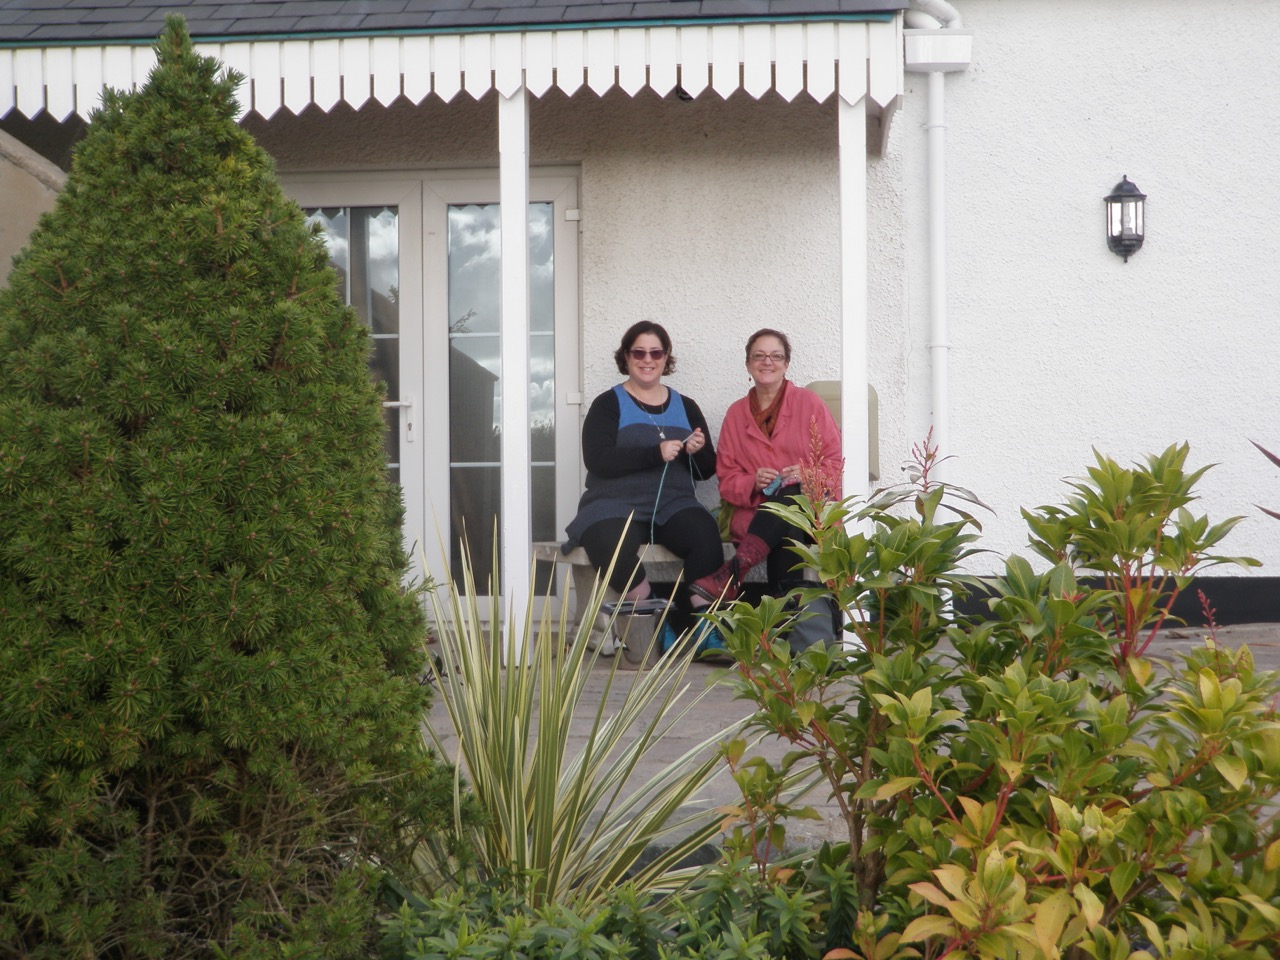 Amy Singer and Brenda Dayne, caught knitting on a break atthe P3 retreat at Beggar's Reach, Pembrokeshire, Wales